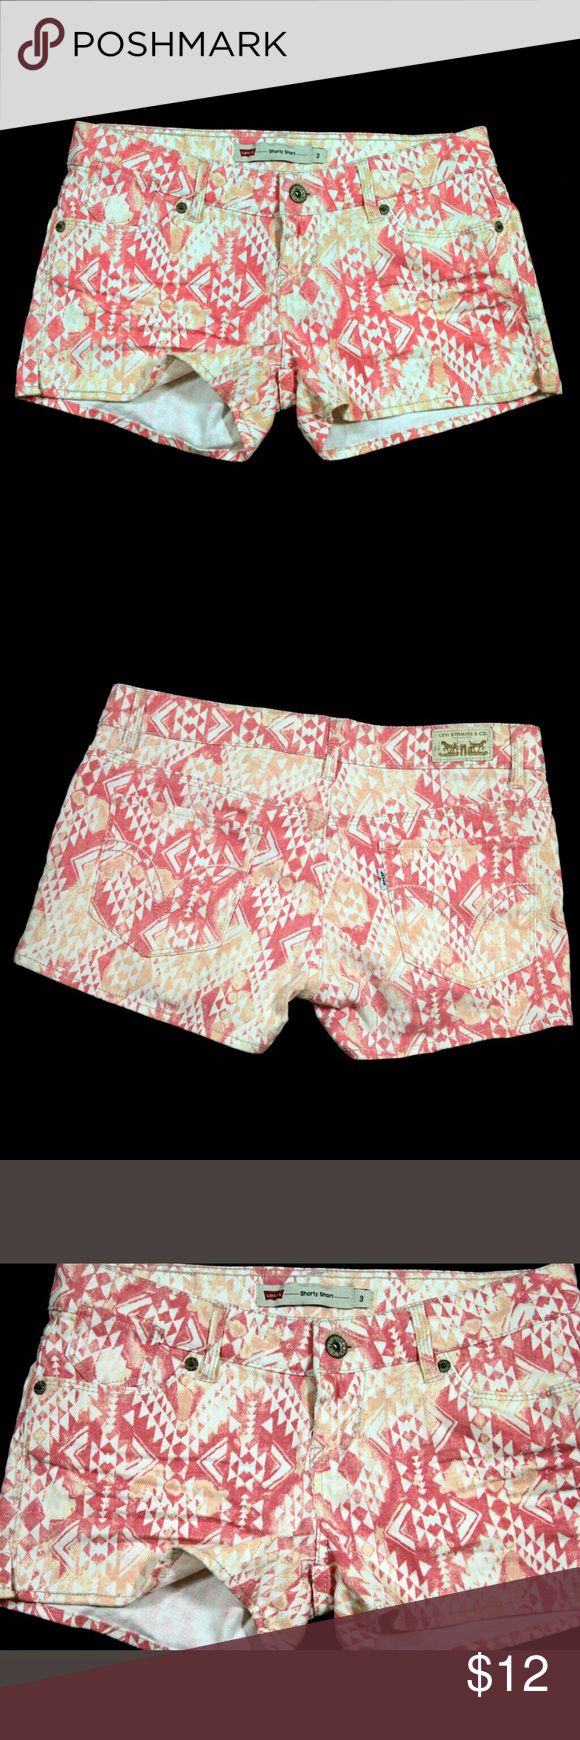 """Levis Shorty Short Jean Shorts with Aztec Print Levis Shorty Short Junior Womens Jean Shorts Size 3 Orange White Aztec Print Material:  52% Ramie, 46% Cotton, and 2% Spandex  Measurements: Waist = 28"""" Outseam = 9.5"""" Inseam = 2""""  Condition:  Great Pre-Owned Condition from Clean Pet/Smoke Free Home. Levi's Shorts"""